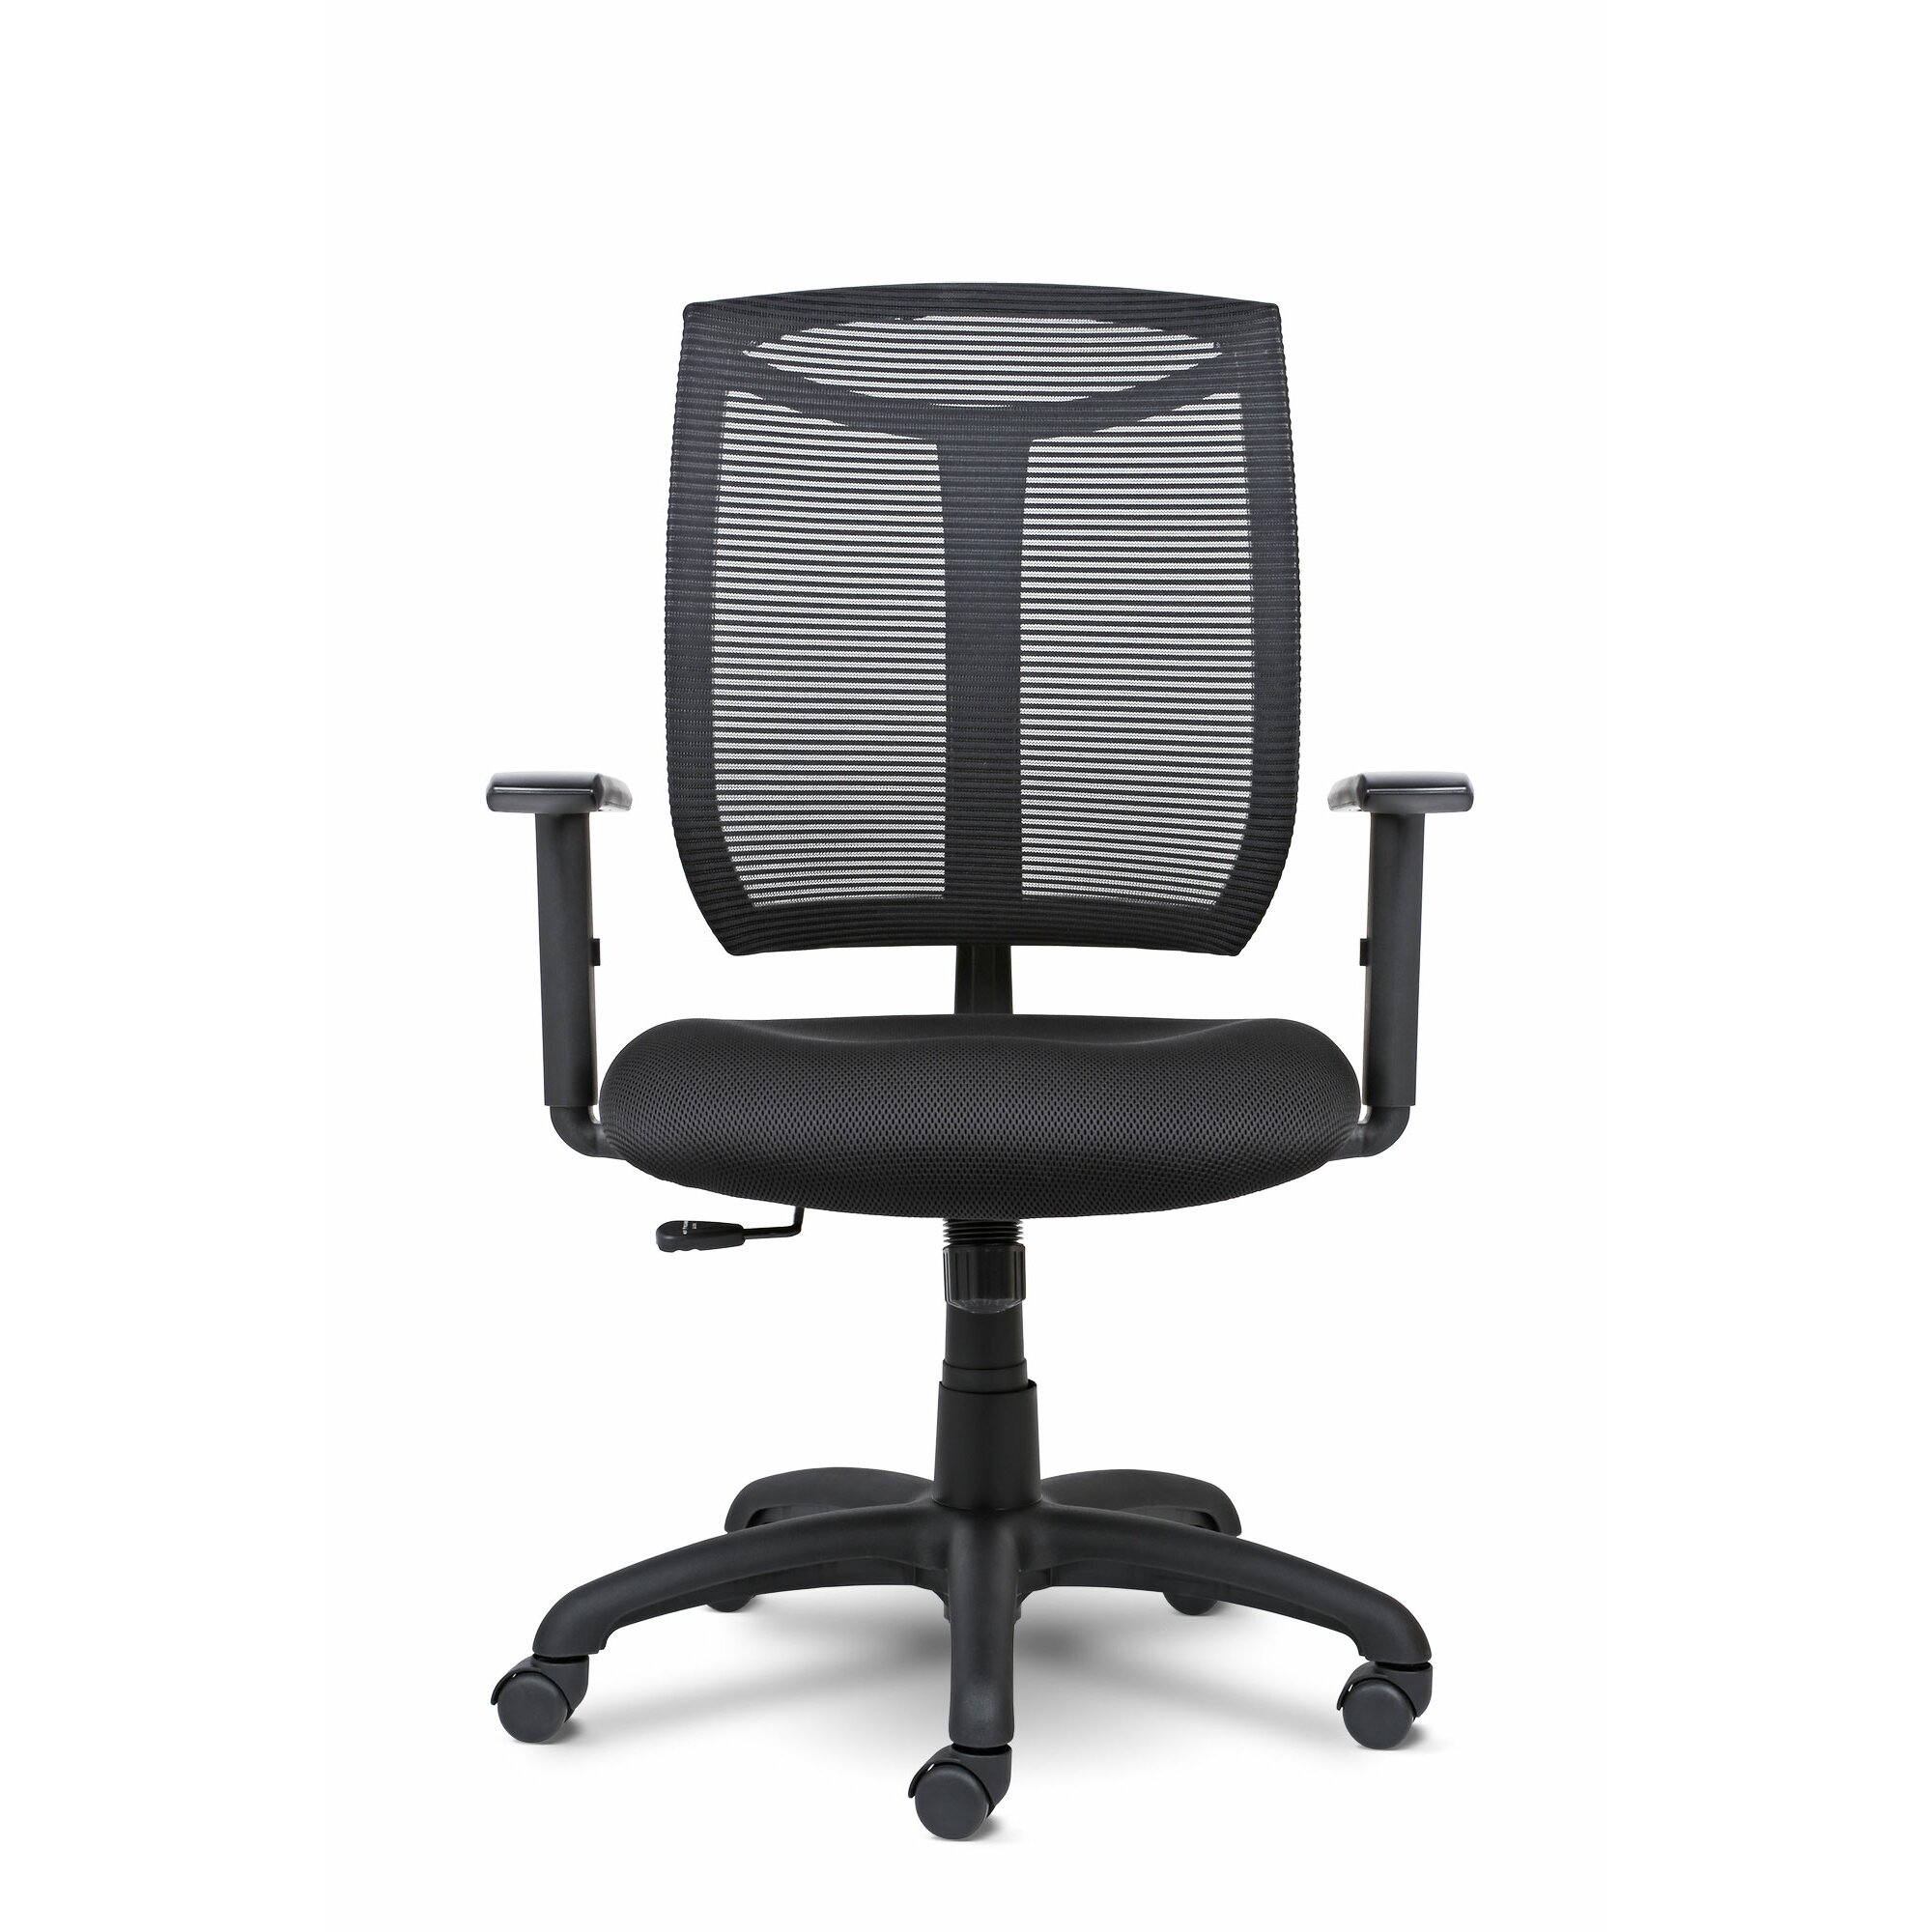 Bria Mid Back Mesh Desk Chair with Arms